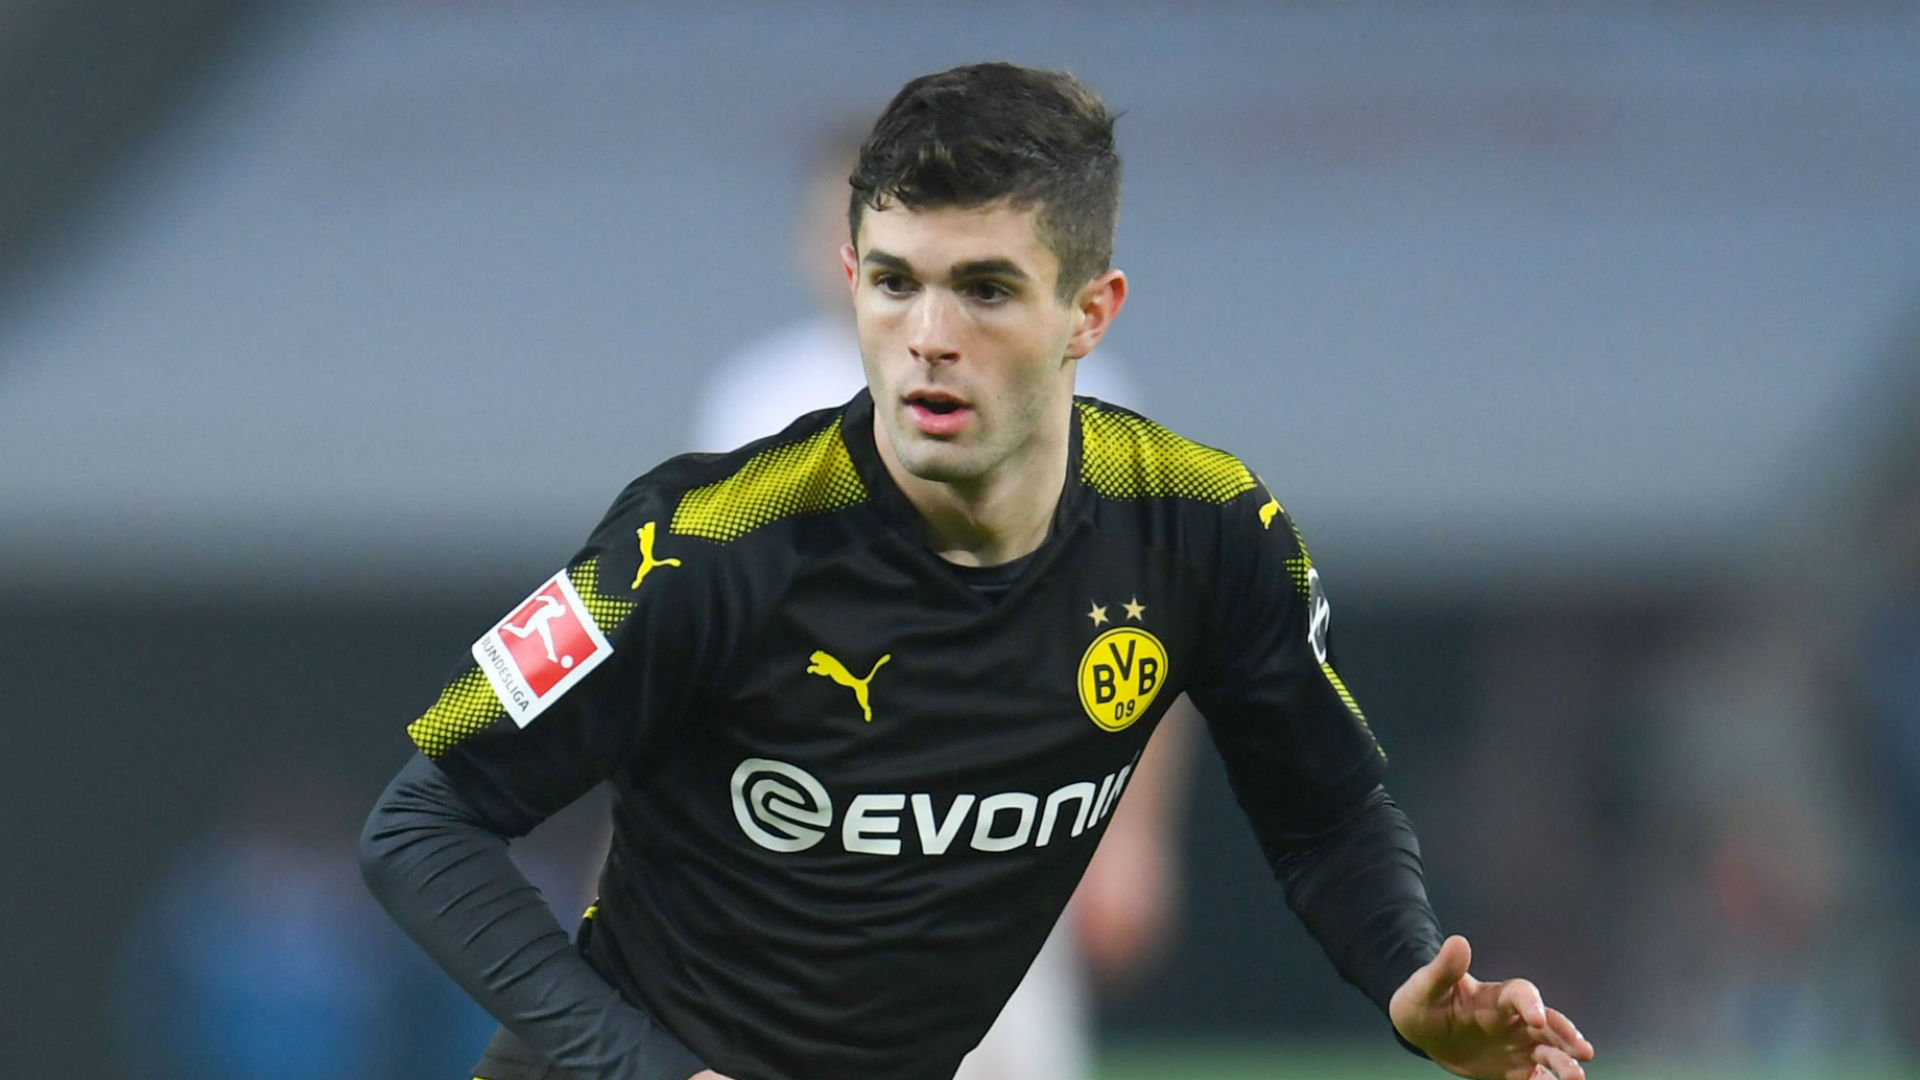 Man Utd, Liverpool target Pulisic leaves door open to Premier League move